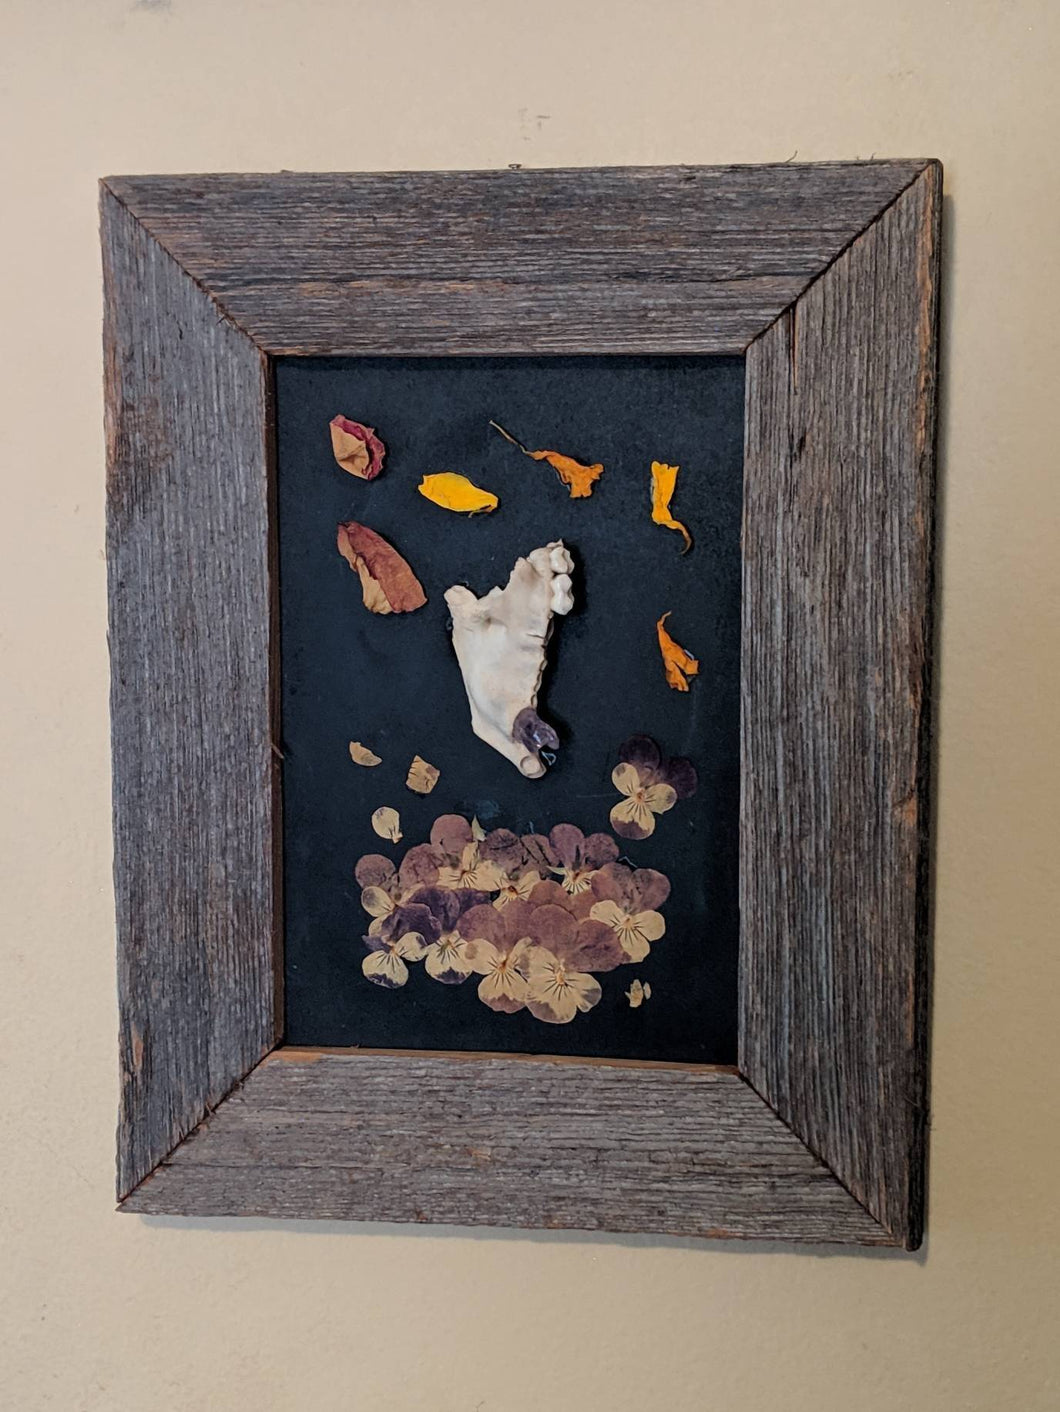 Mandible with amethyst and dried flowers framed shadowbox